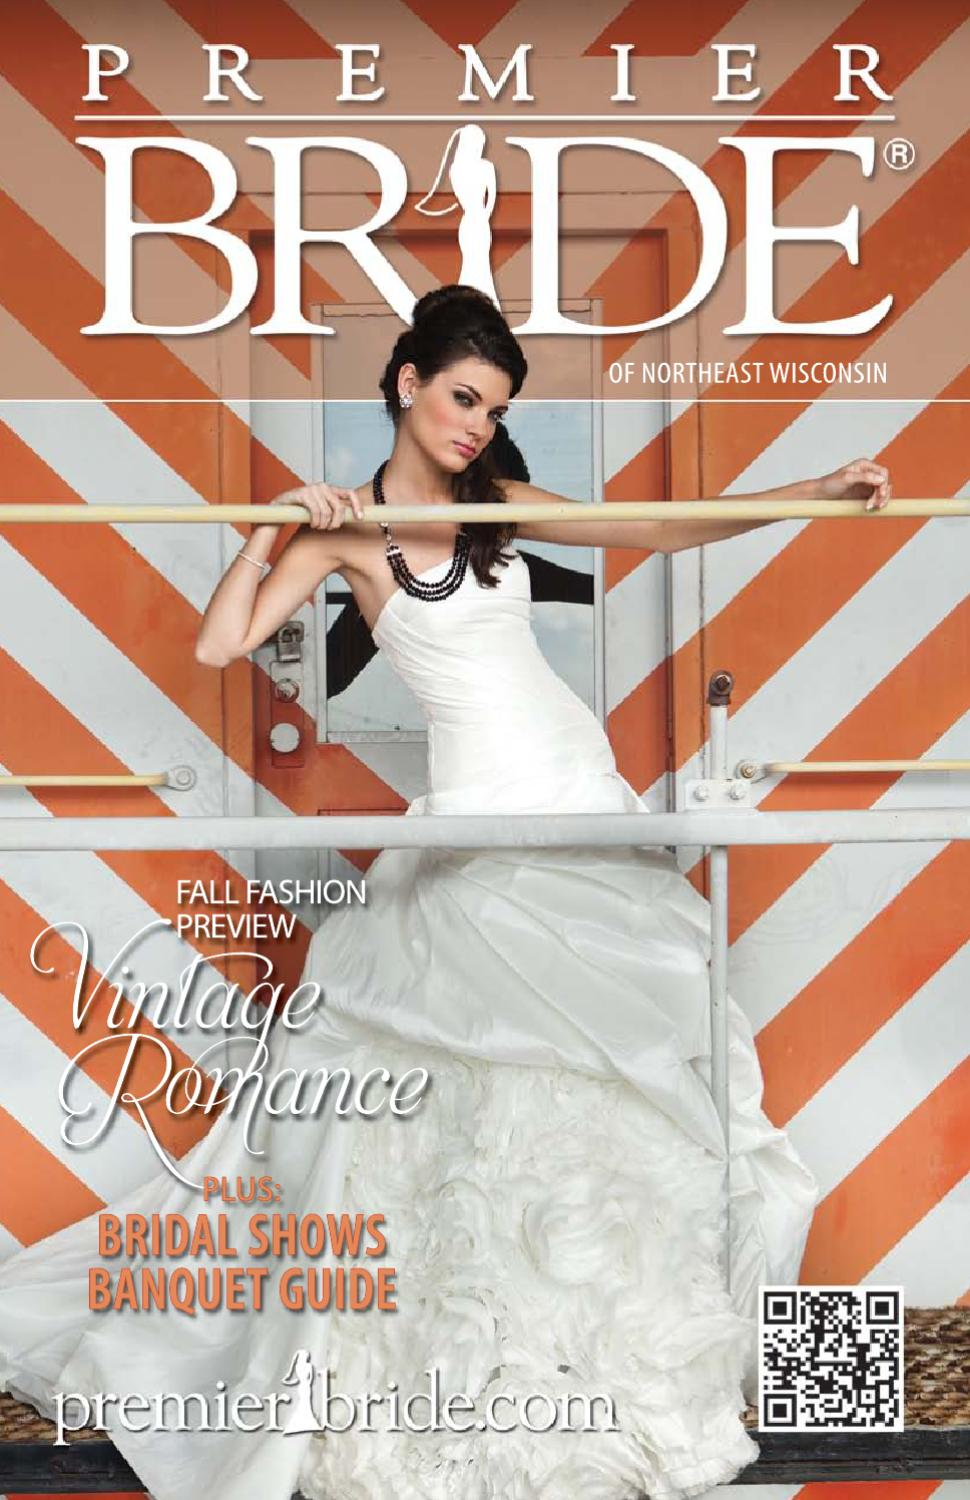 52d503515 Premier Bride of Northeast Wisconsin by Jennifer Creative - issuu